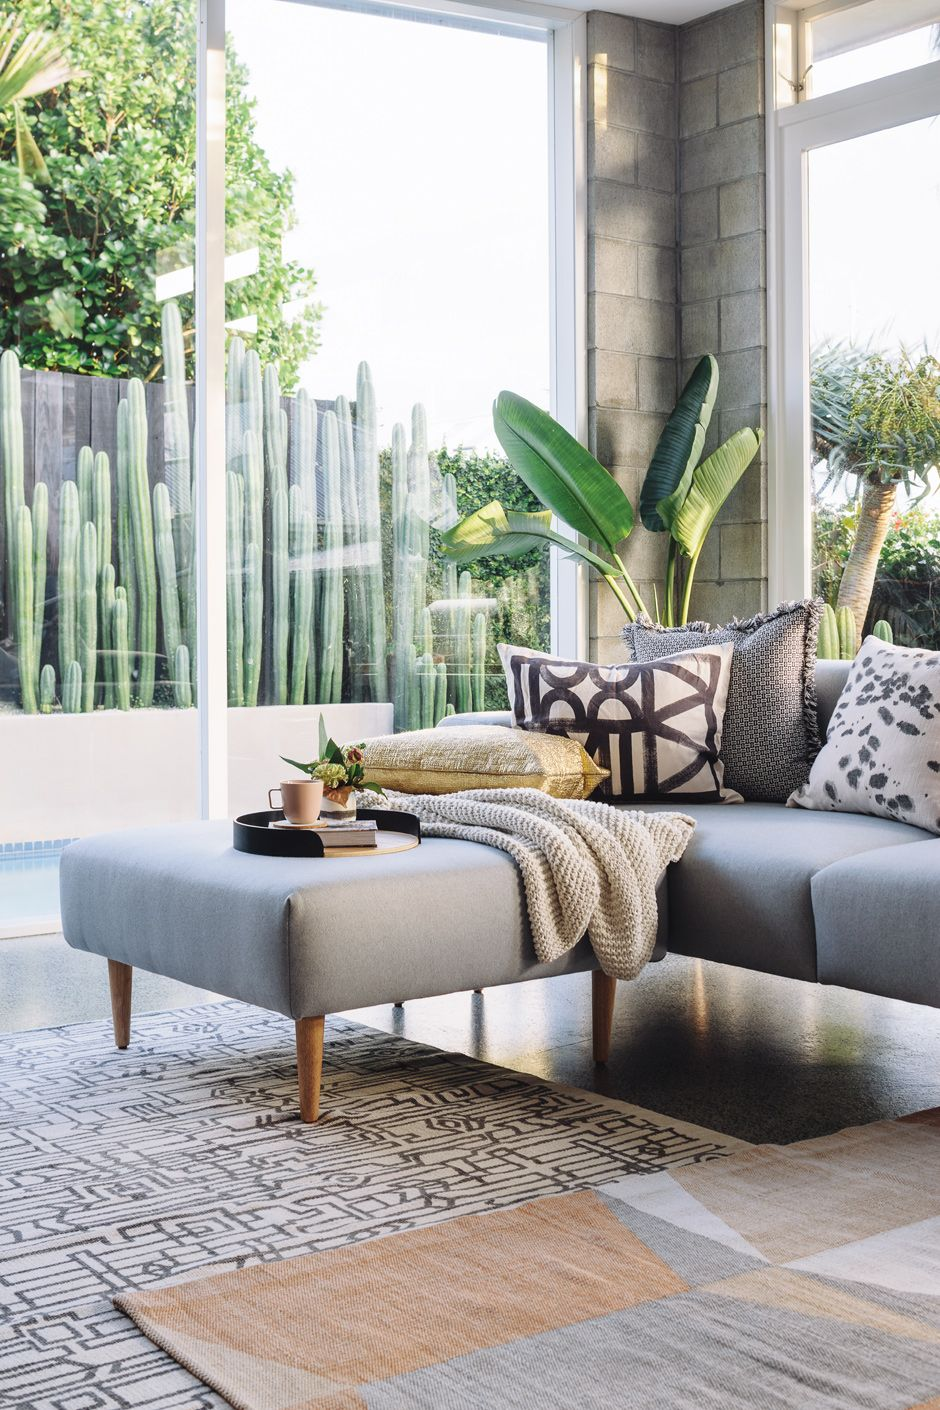 Palm springs inspired living spaces with citta h o u s e - Palm springs interior design style ...